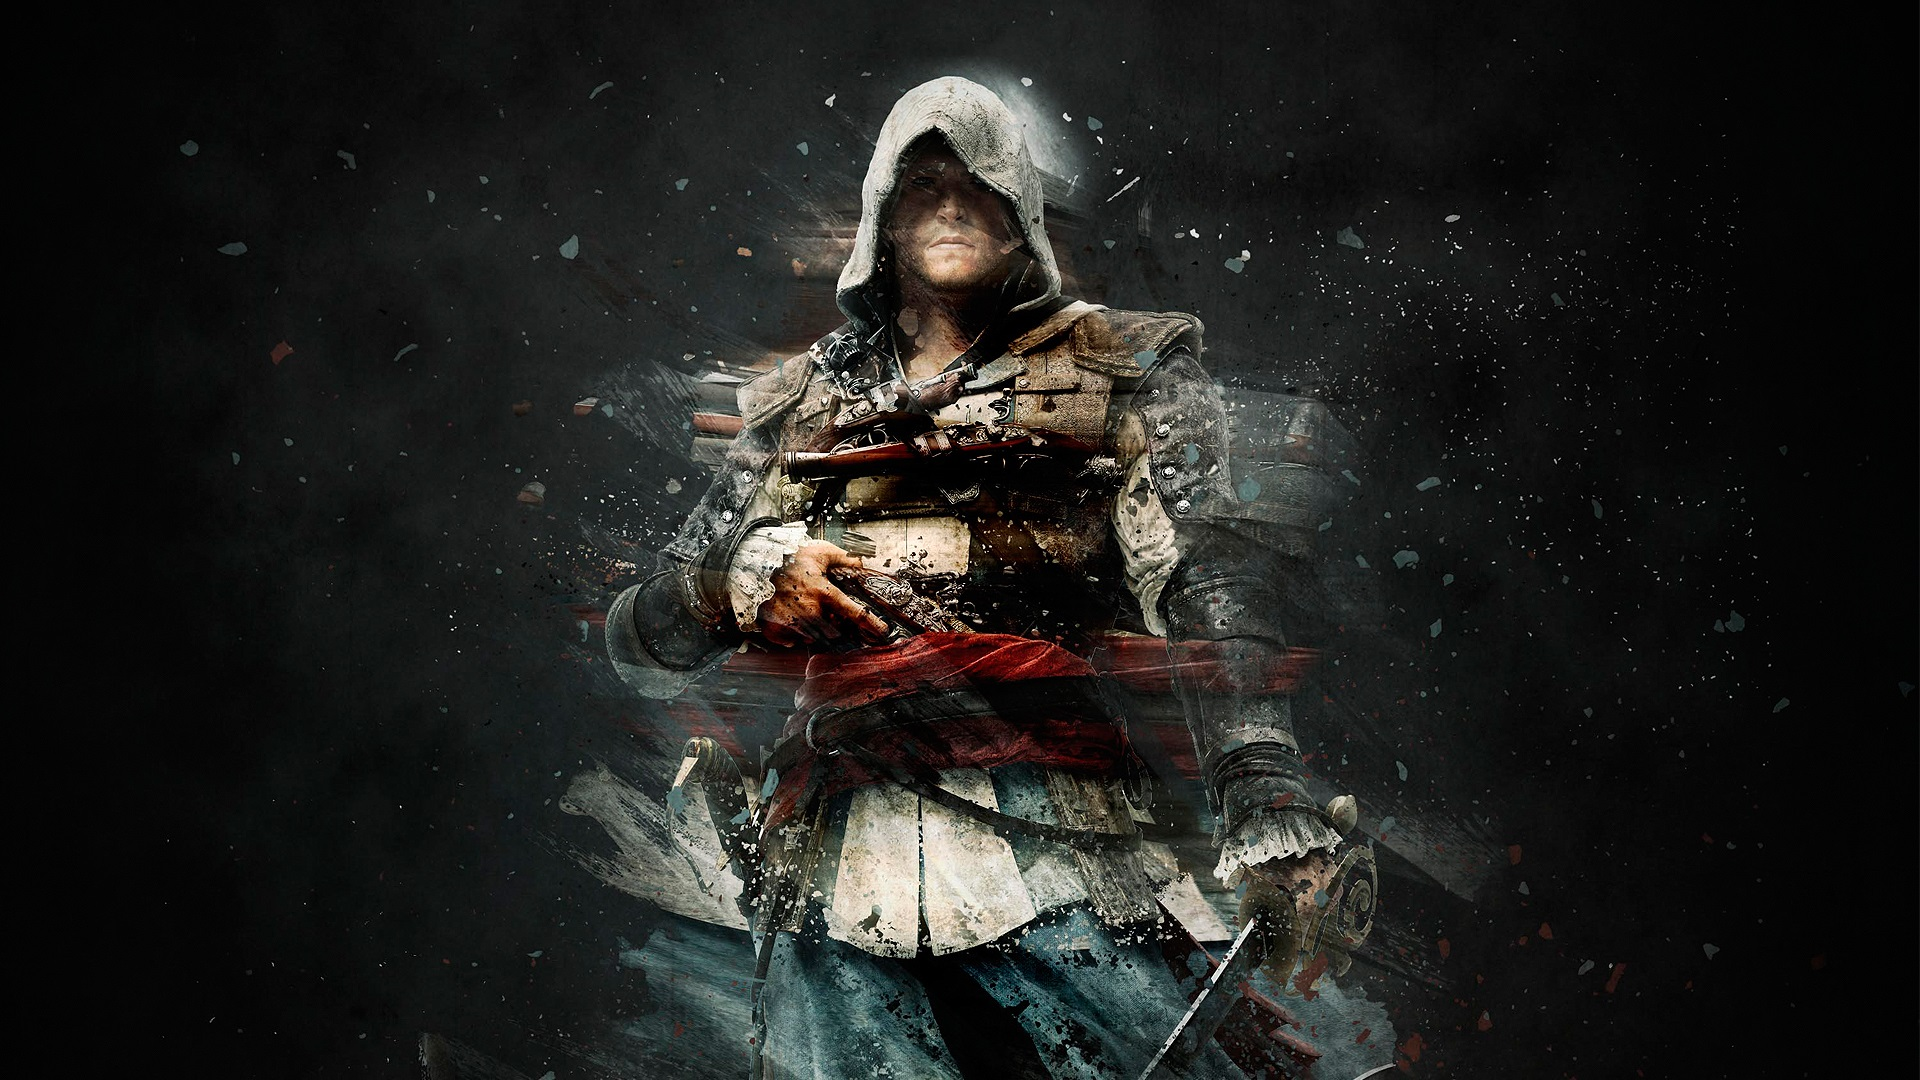 Assassin S Creed Black Background 640x960 Iphone 4 4s Wallpaper Background Picture Image